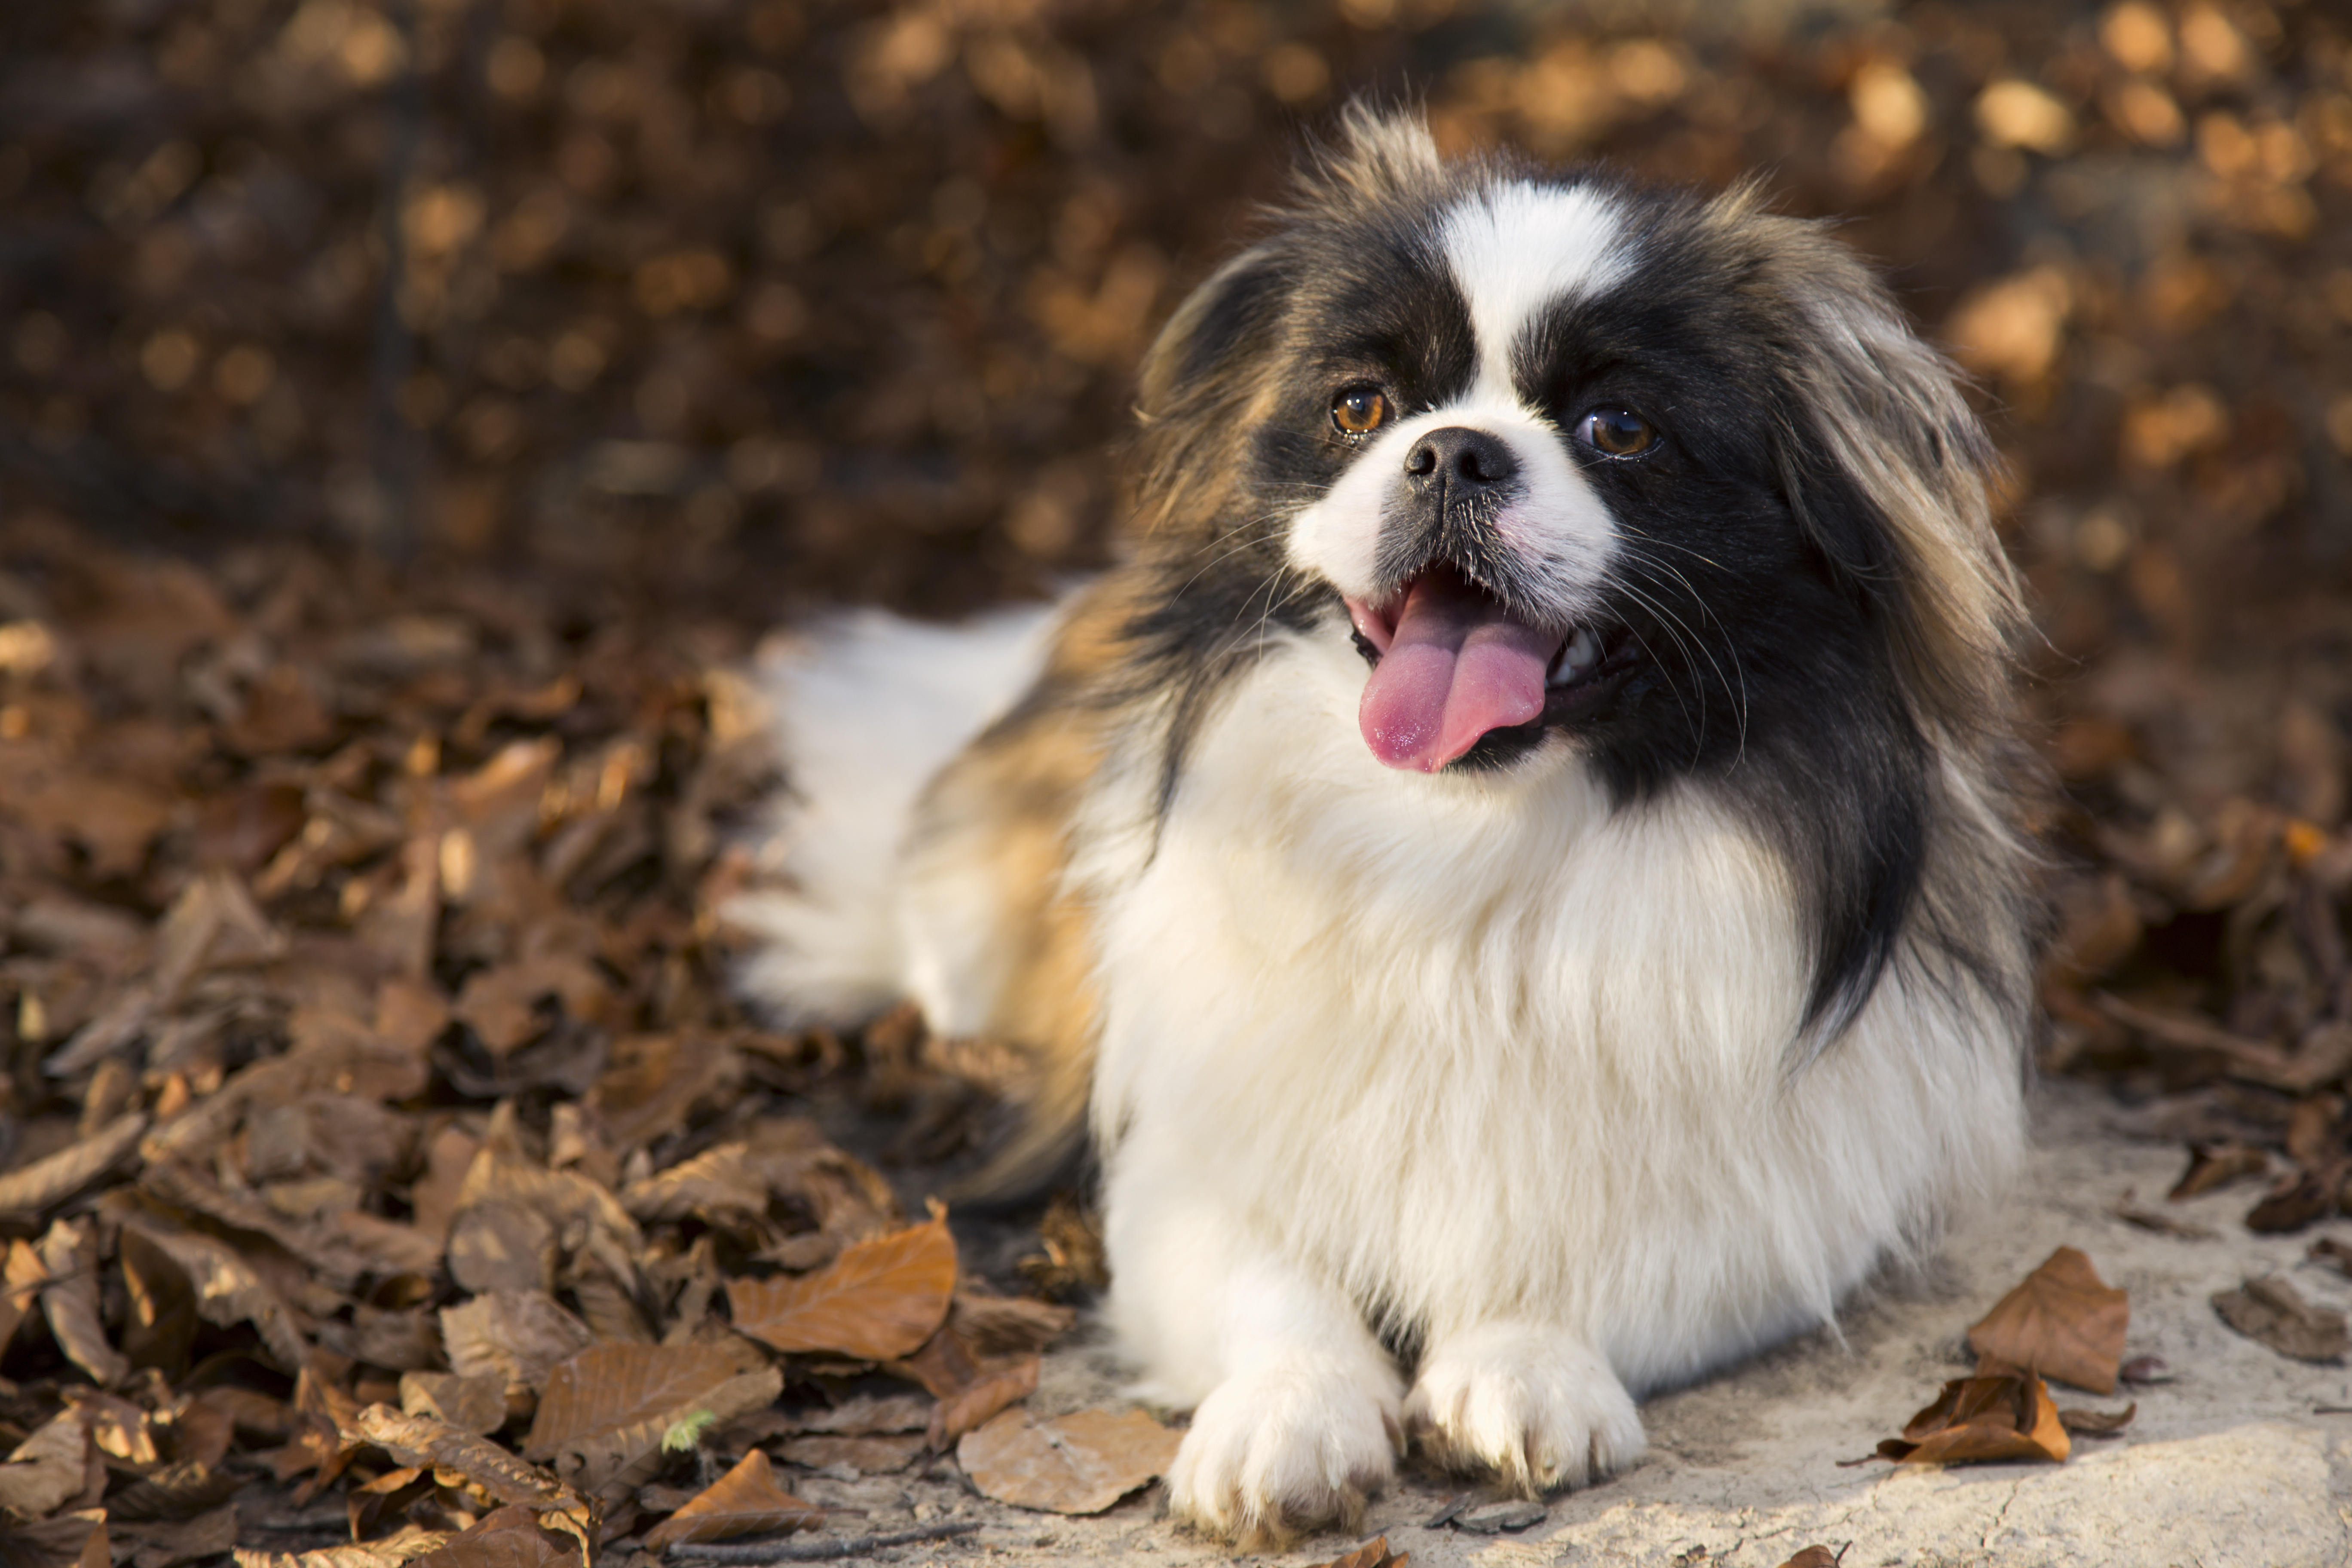 What's your Mutt DNA Brown and white Pekingese dog lying on ground covered in fall leaves